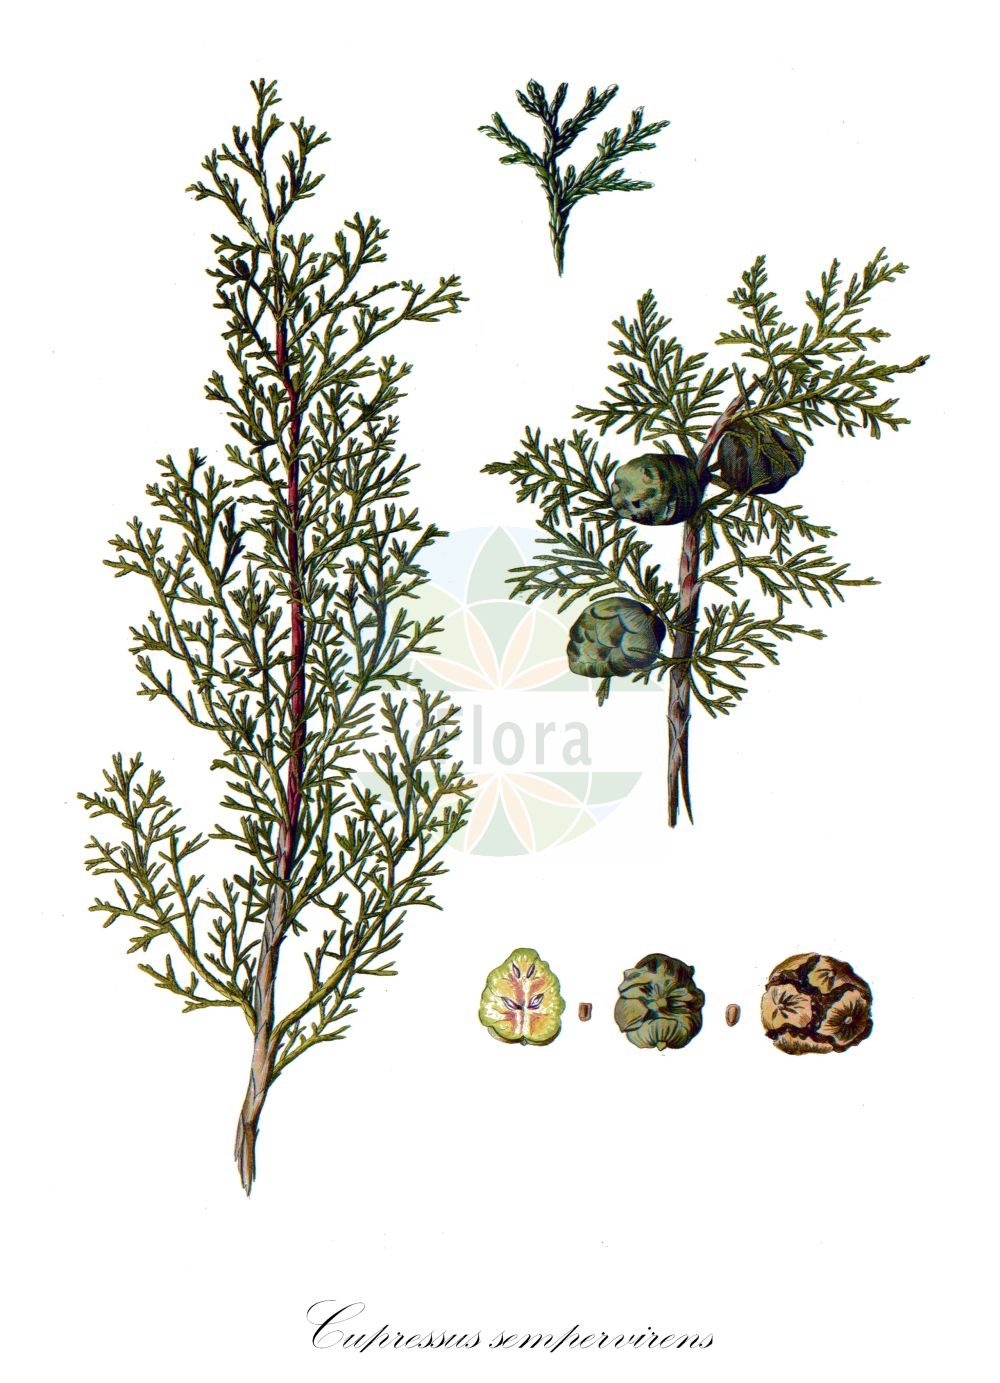 Historische Abbildung von Cupressus sempervirens. Das Bild zeigt Blatt, Bluete, Frucht und Same. ---- Historical Drawing of Cupressus sempervirens.The image is showing leaf, flower, fruit and seed.(Cupressus sempervirens,Cupressus fastigiata,Cupressus horizontalis,Cupressus pyramidalis,var. pyramidalis,Cupressus,Cupressaceae,Zypressengewaechse,Cypress family,Blatt,Bluete,Frucht,Same,leaf,flower,fruit,seed,Pallas (1784))